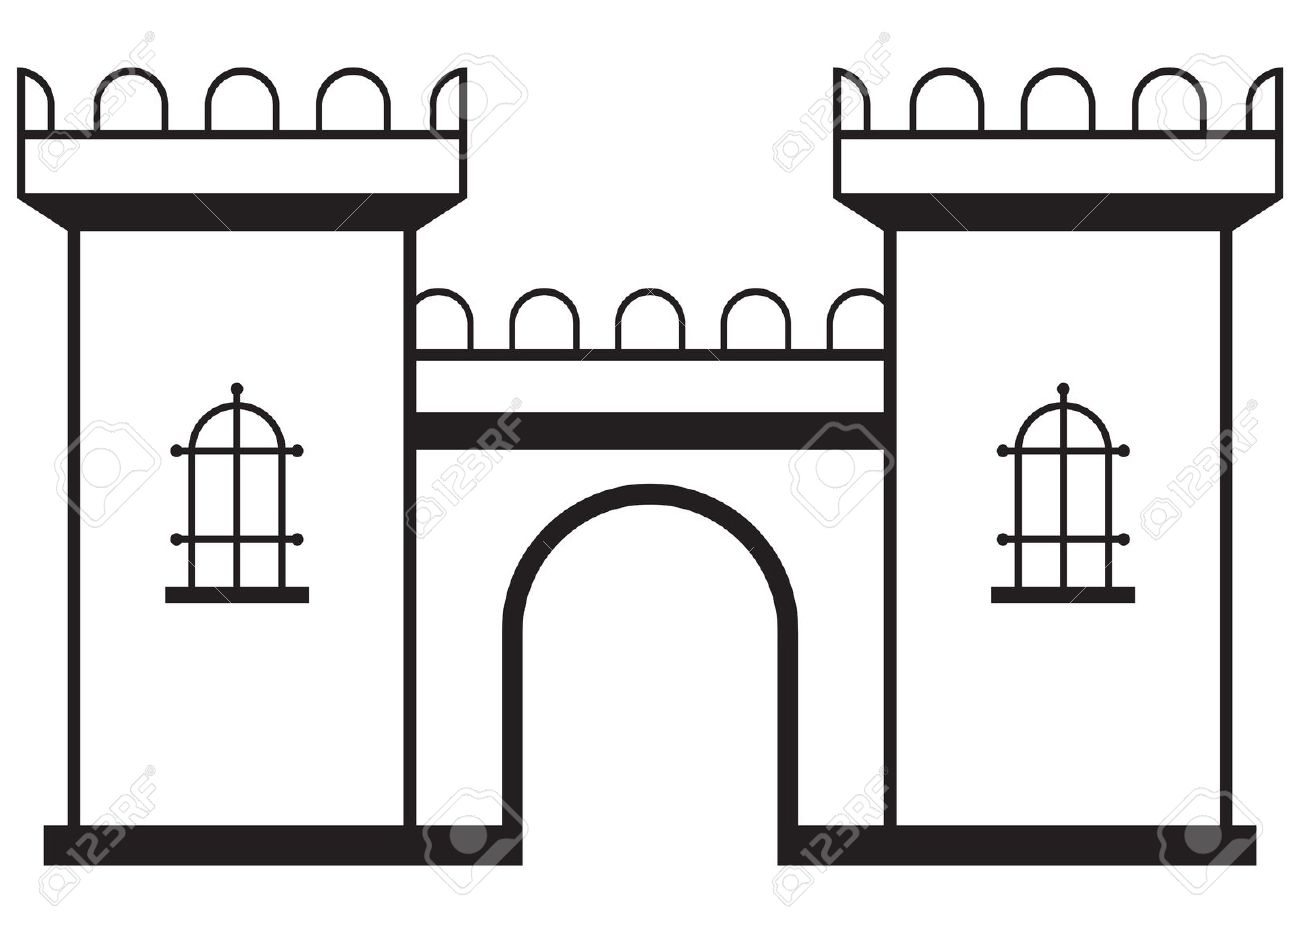 Free Castle Clipart Black And White, Download Free Clip Art.